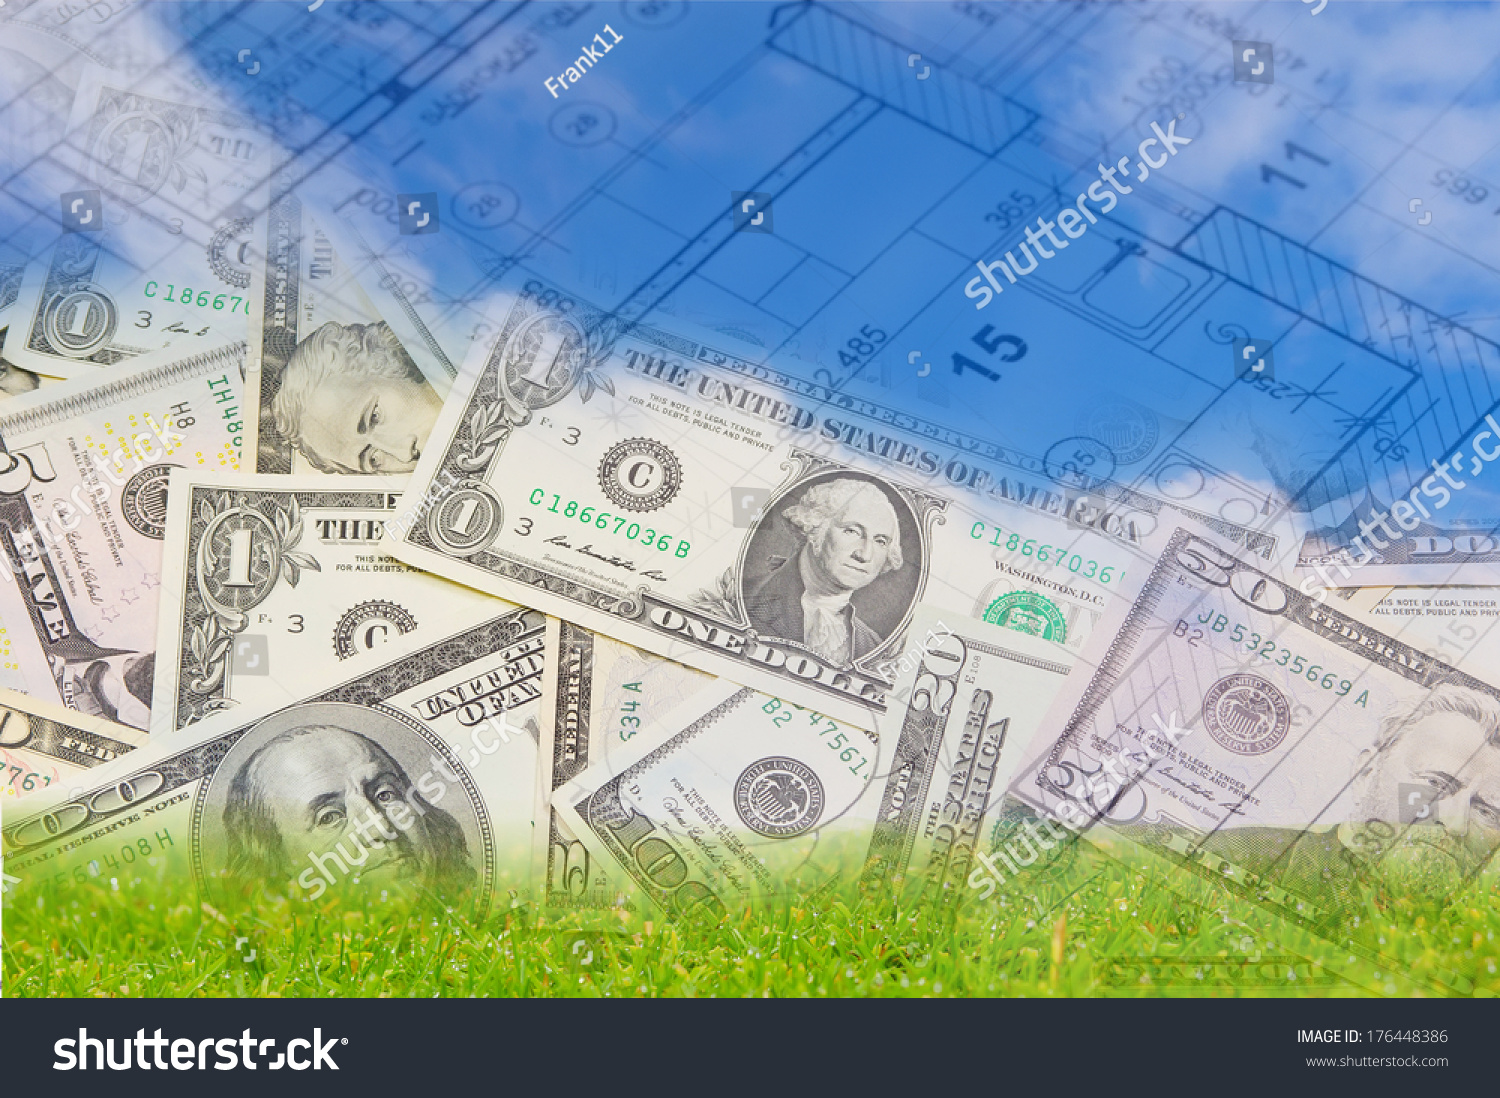 Background blue sky green land blueprint stock photo 176448386 background with blue sky green land blueprint of a house interior and us dollars malvernweather Images